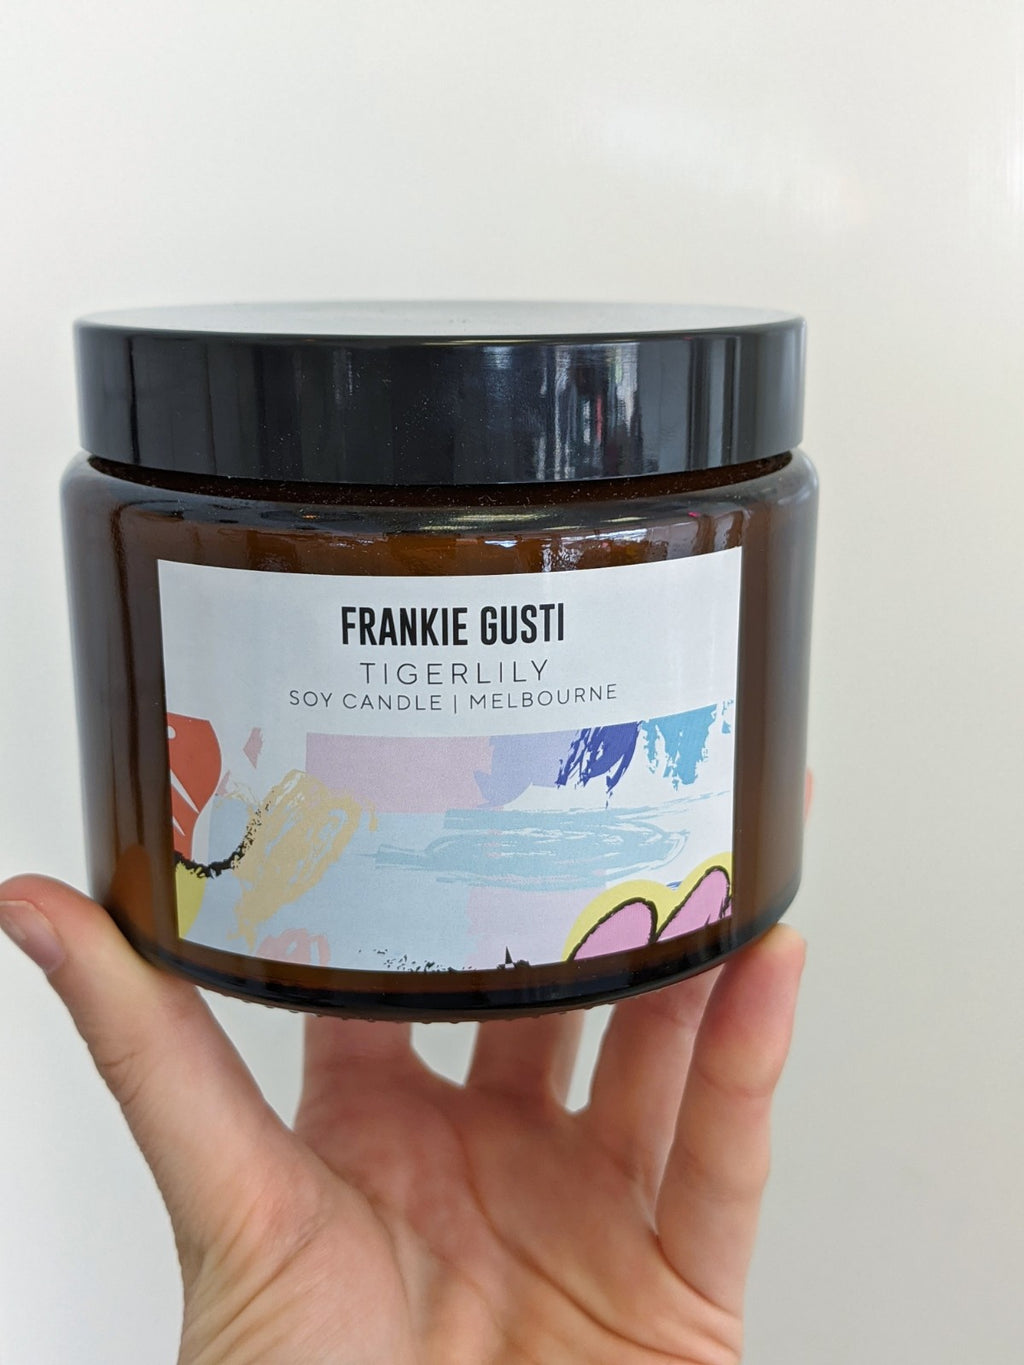 Big Honey - Frankie Gusti Candle